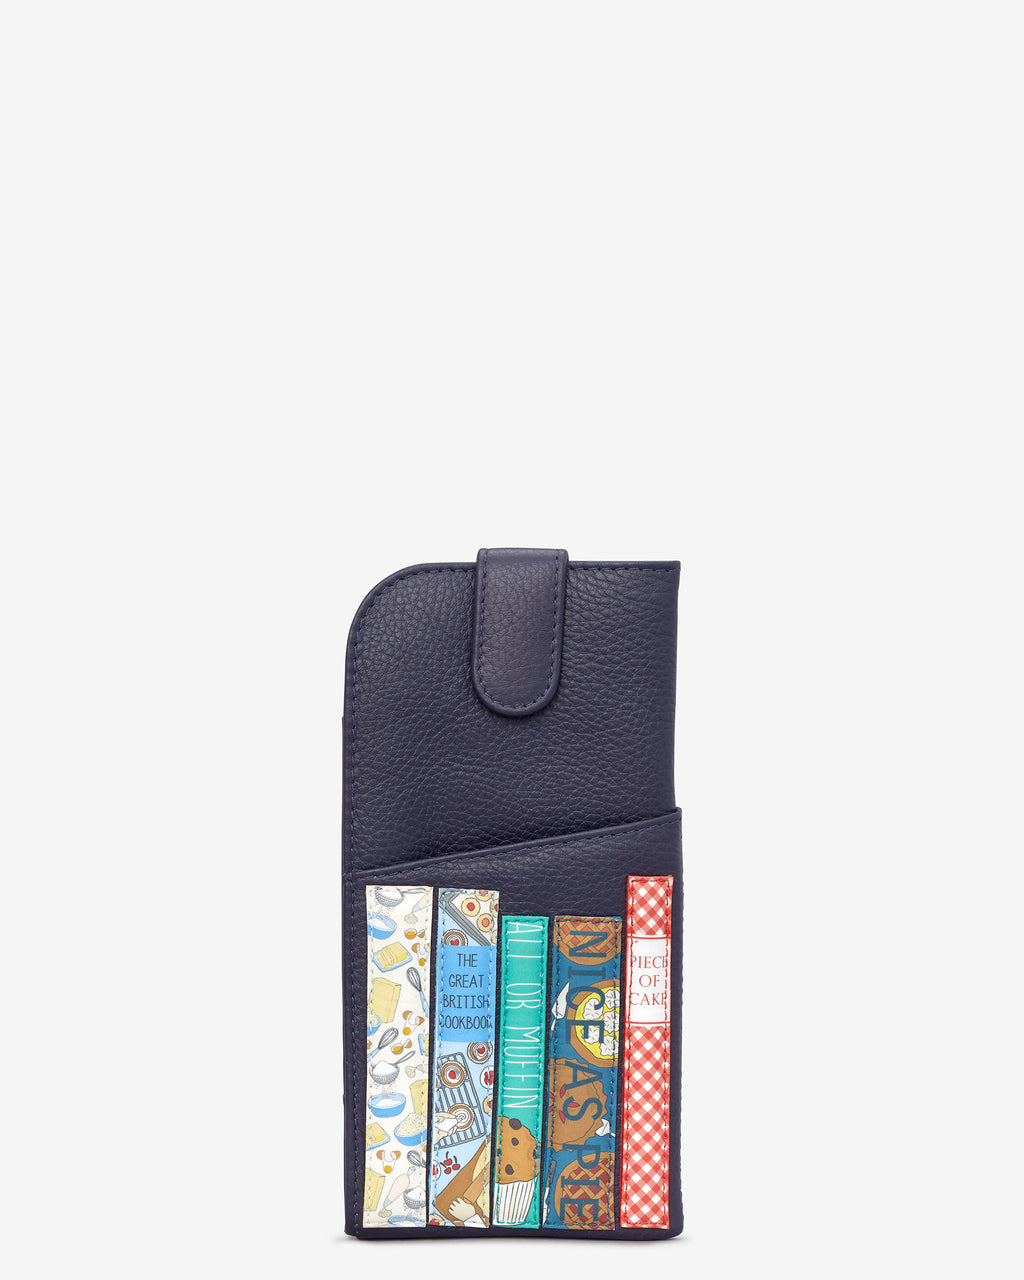 Cook Bookworm Library Leather Glasses Case